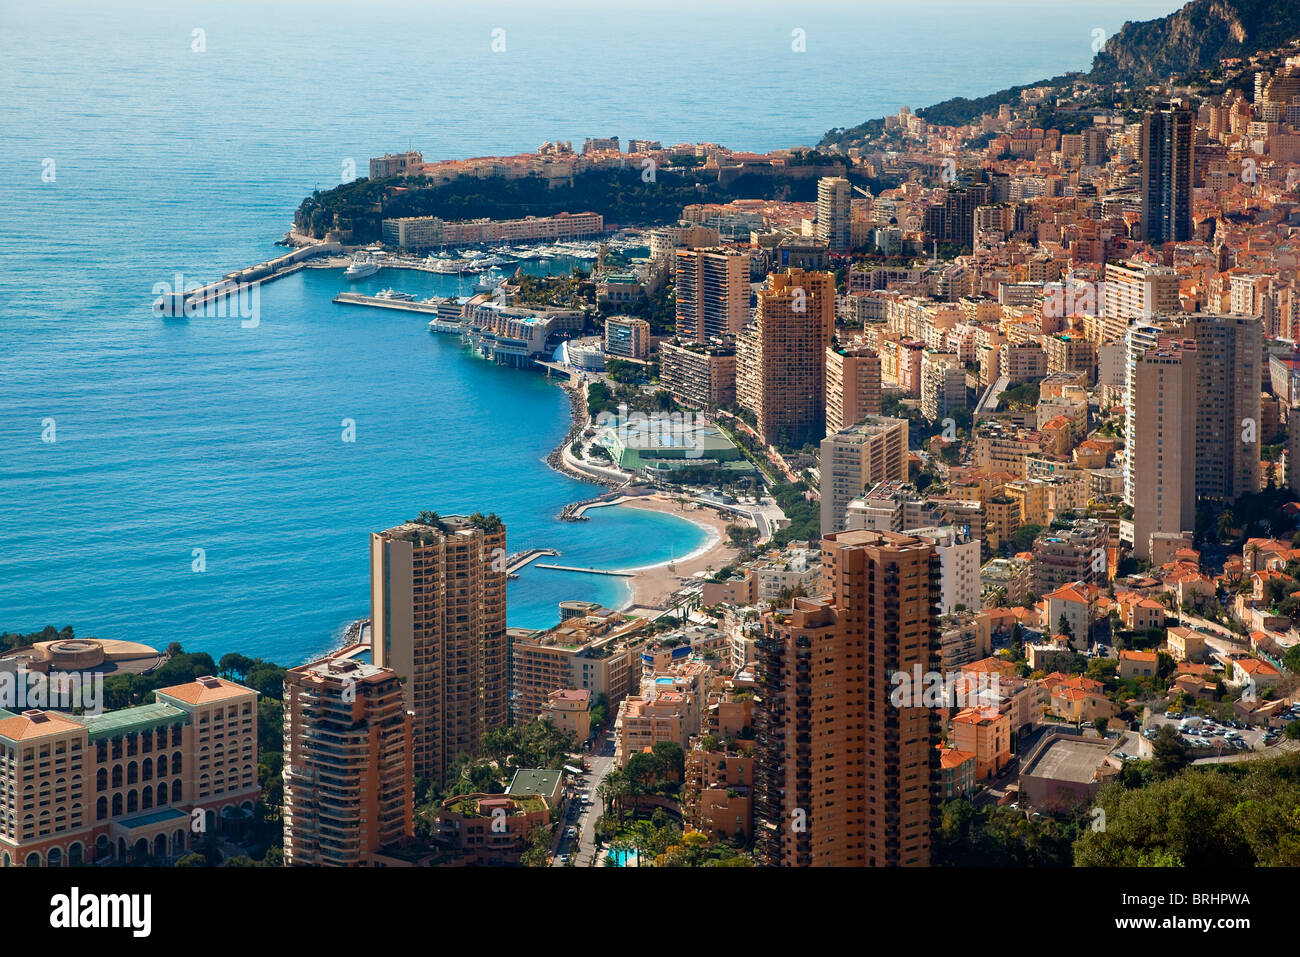 CITY SKYLINE AND HARBOUR, AERIAL VIEW OF MONACO - Stock Image